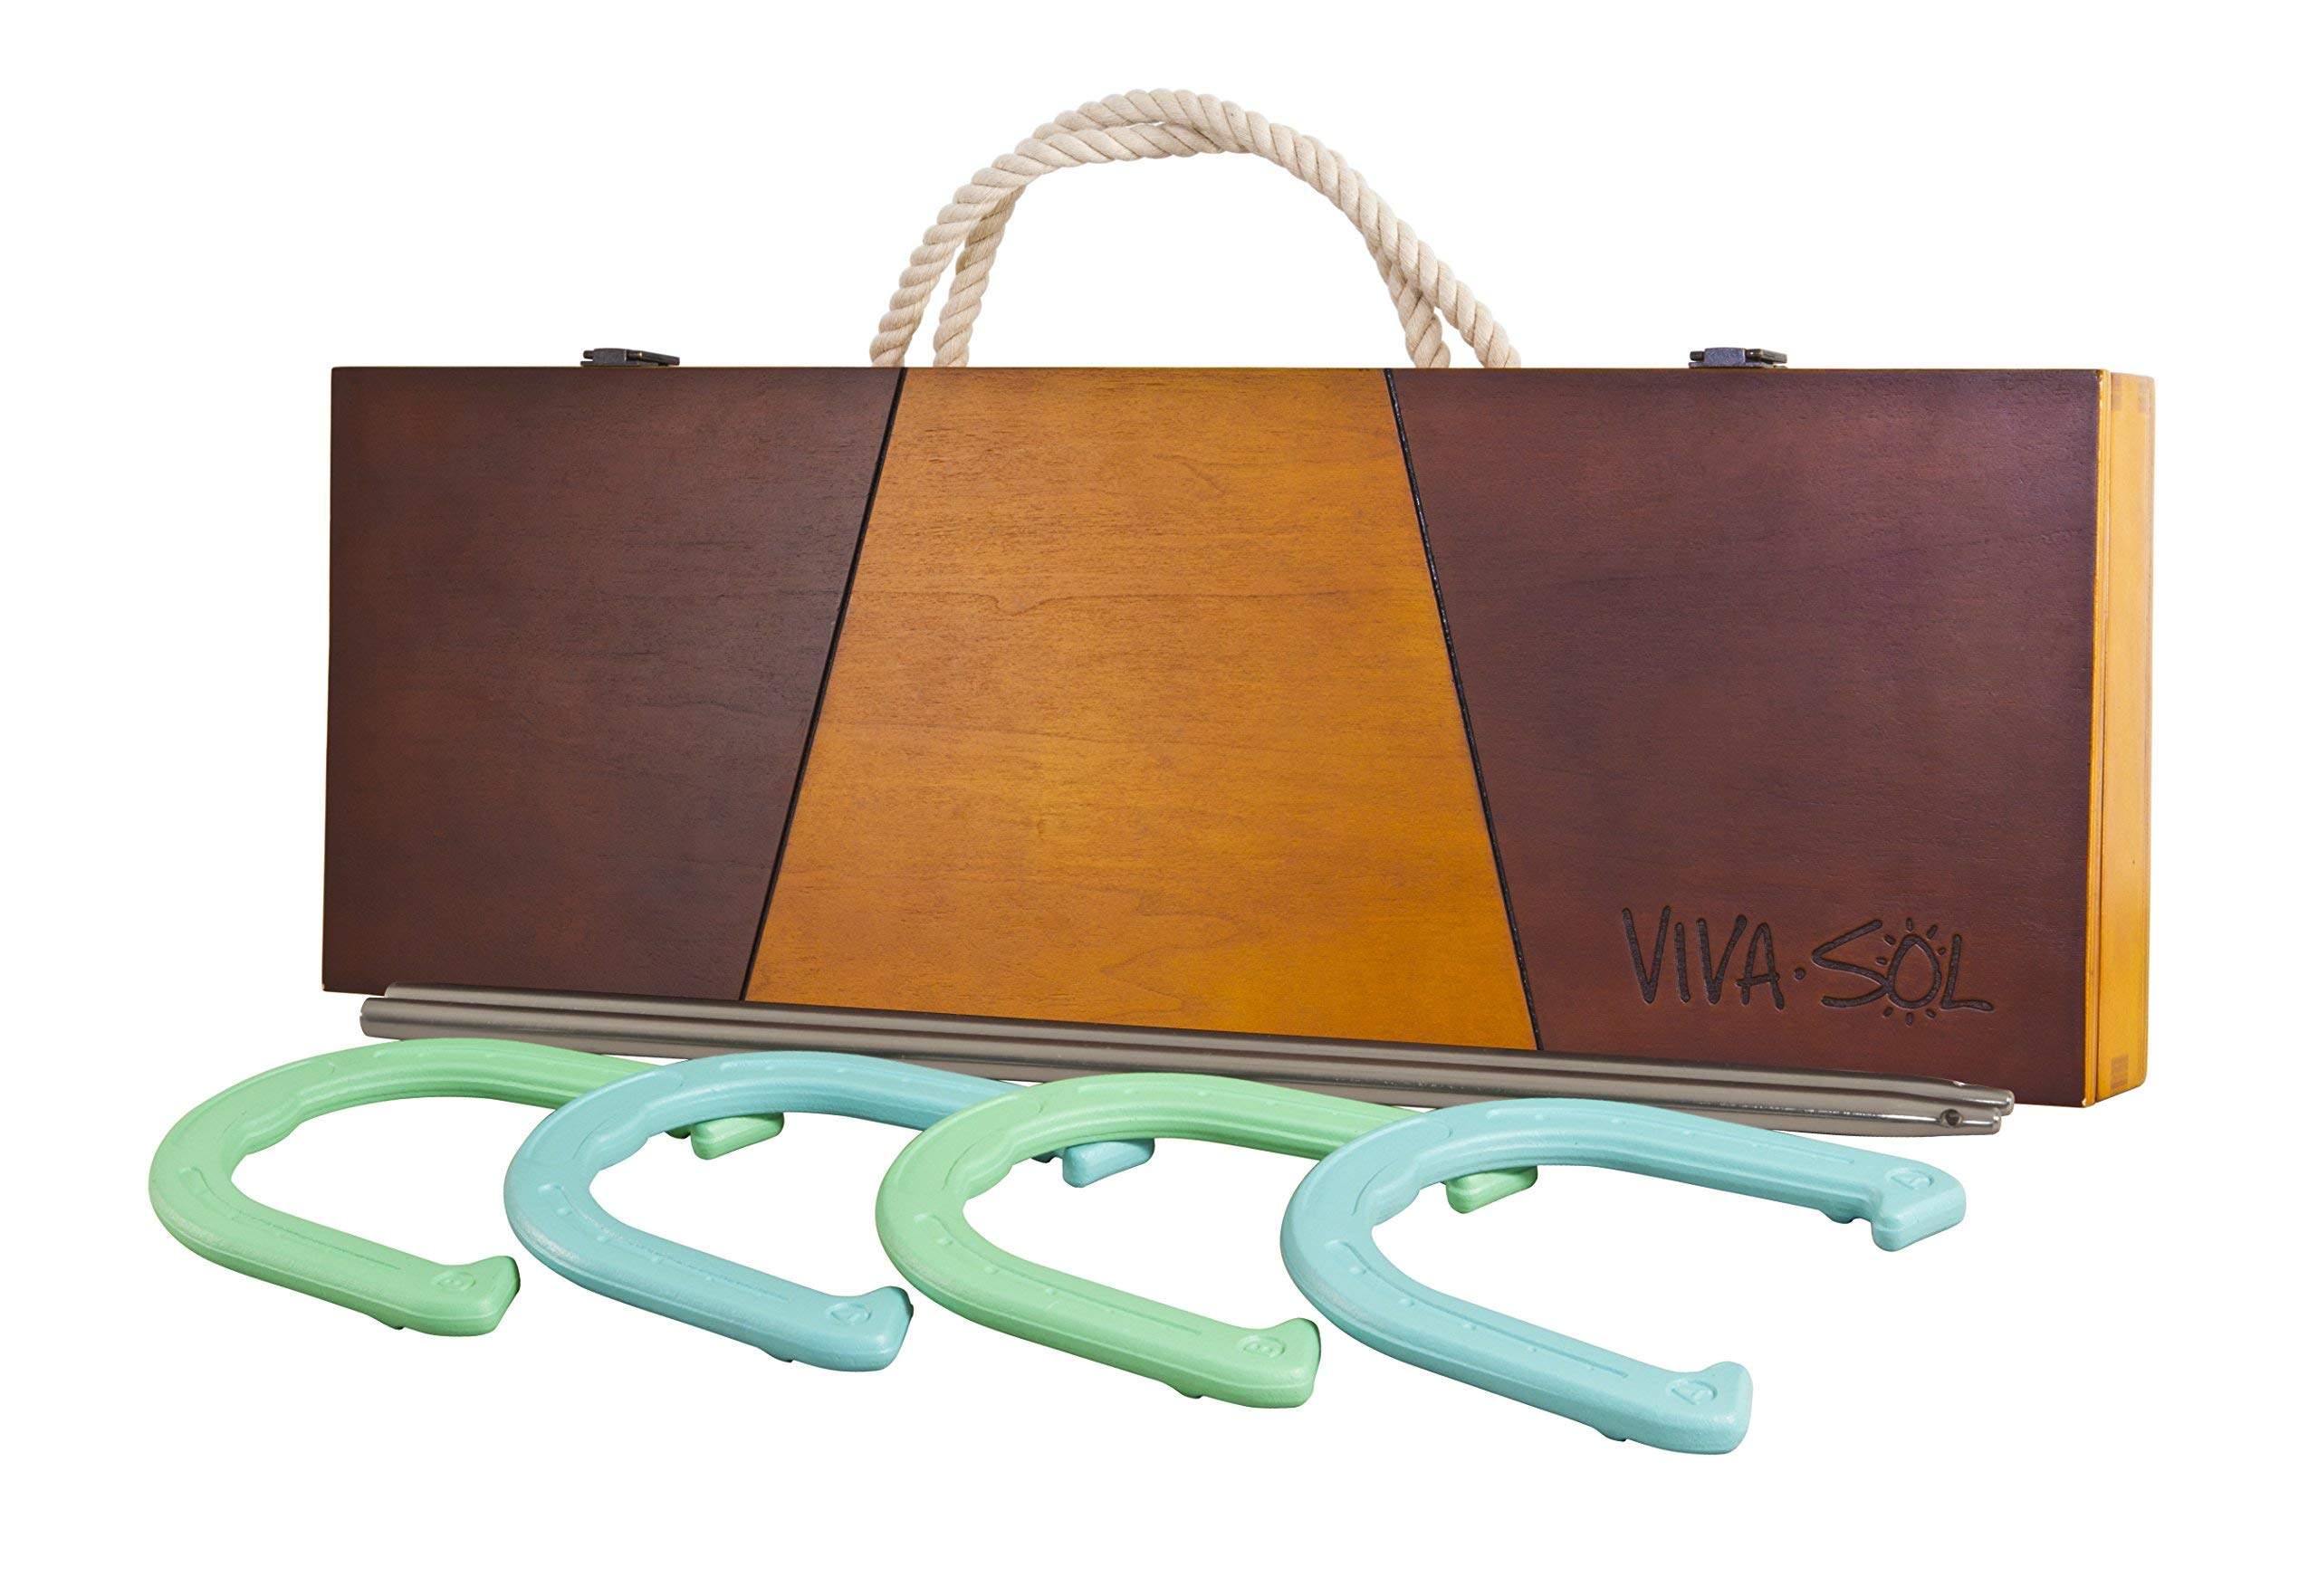 Viva Sol Premium Horseshoes Outdoor Game Set with 4 Horseshoes, 2 Stakes, and Wooden Case (Renewed)